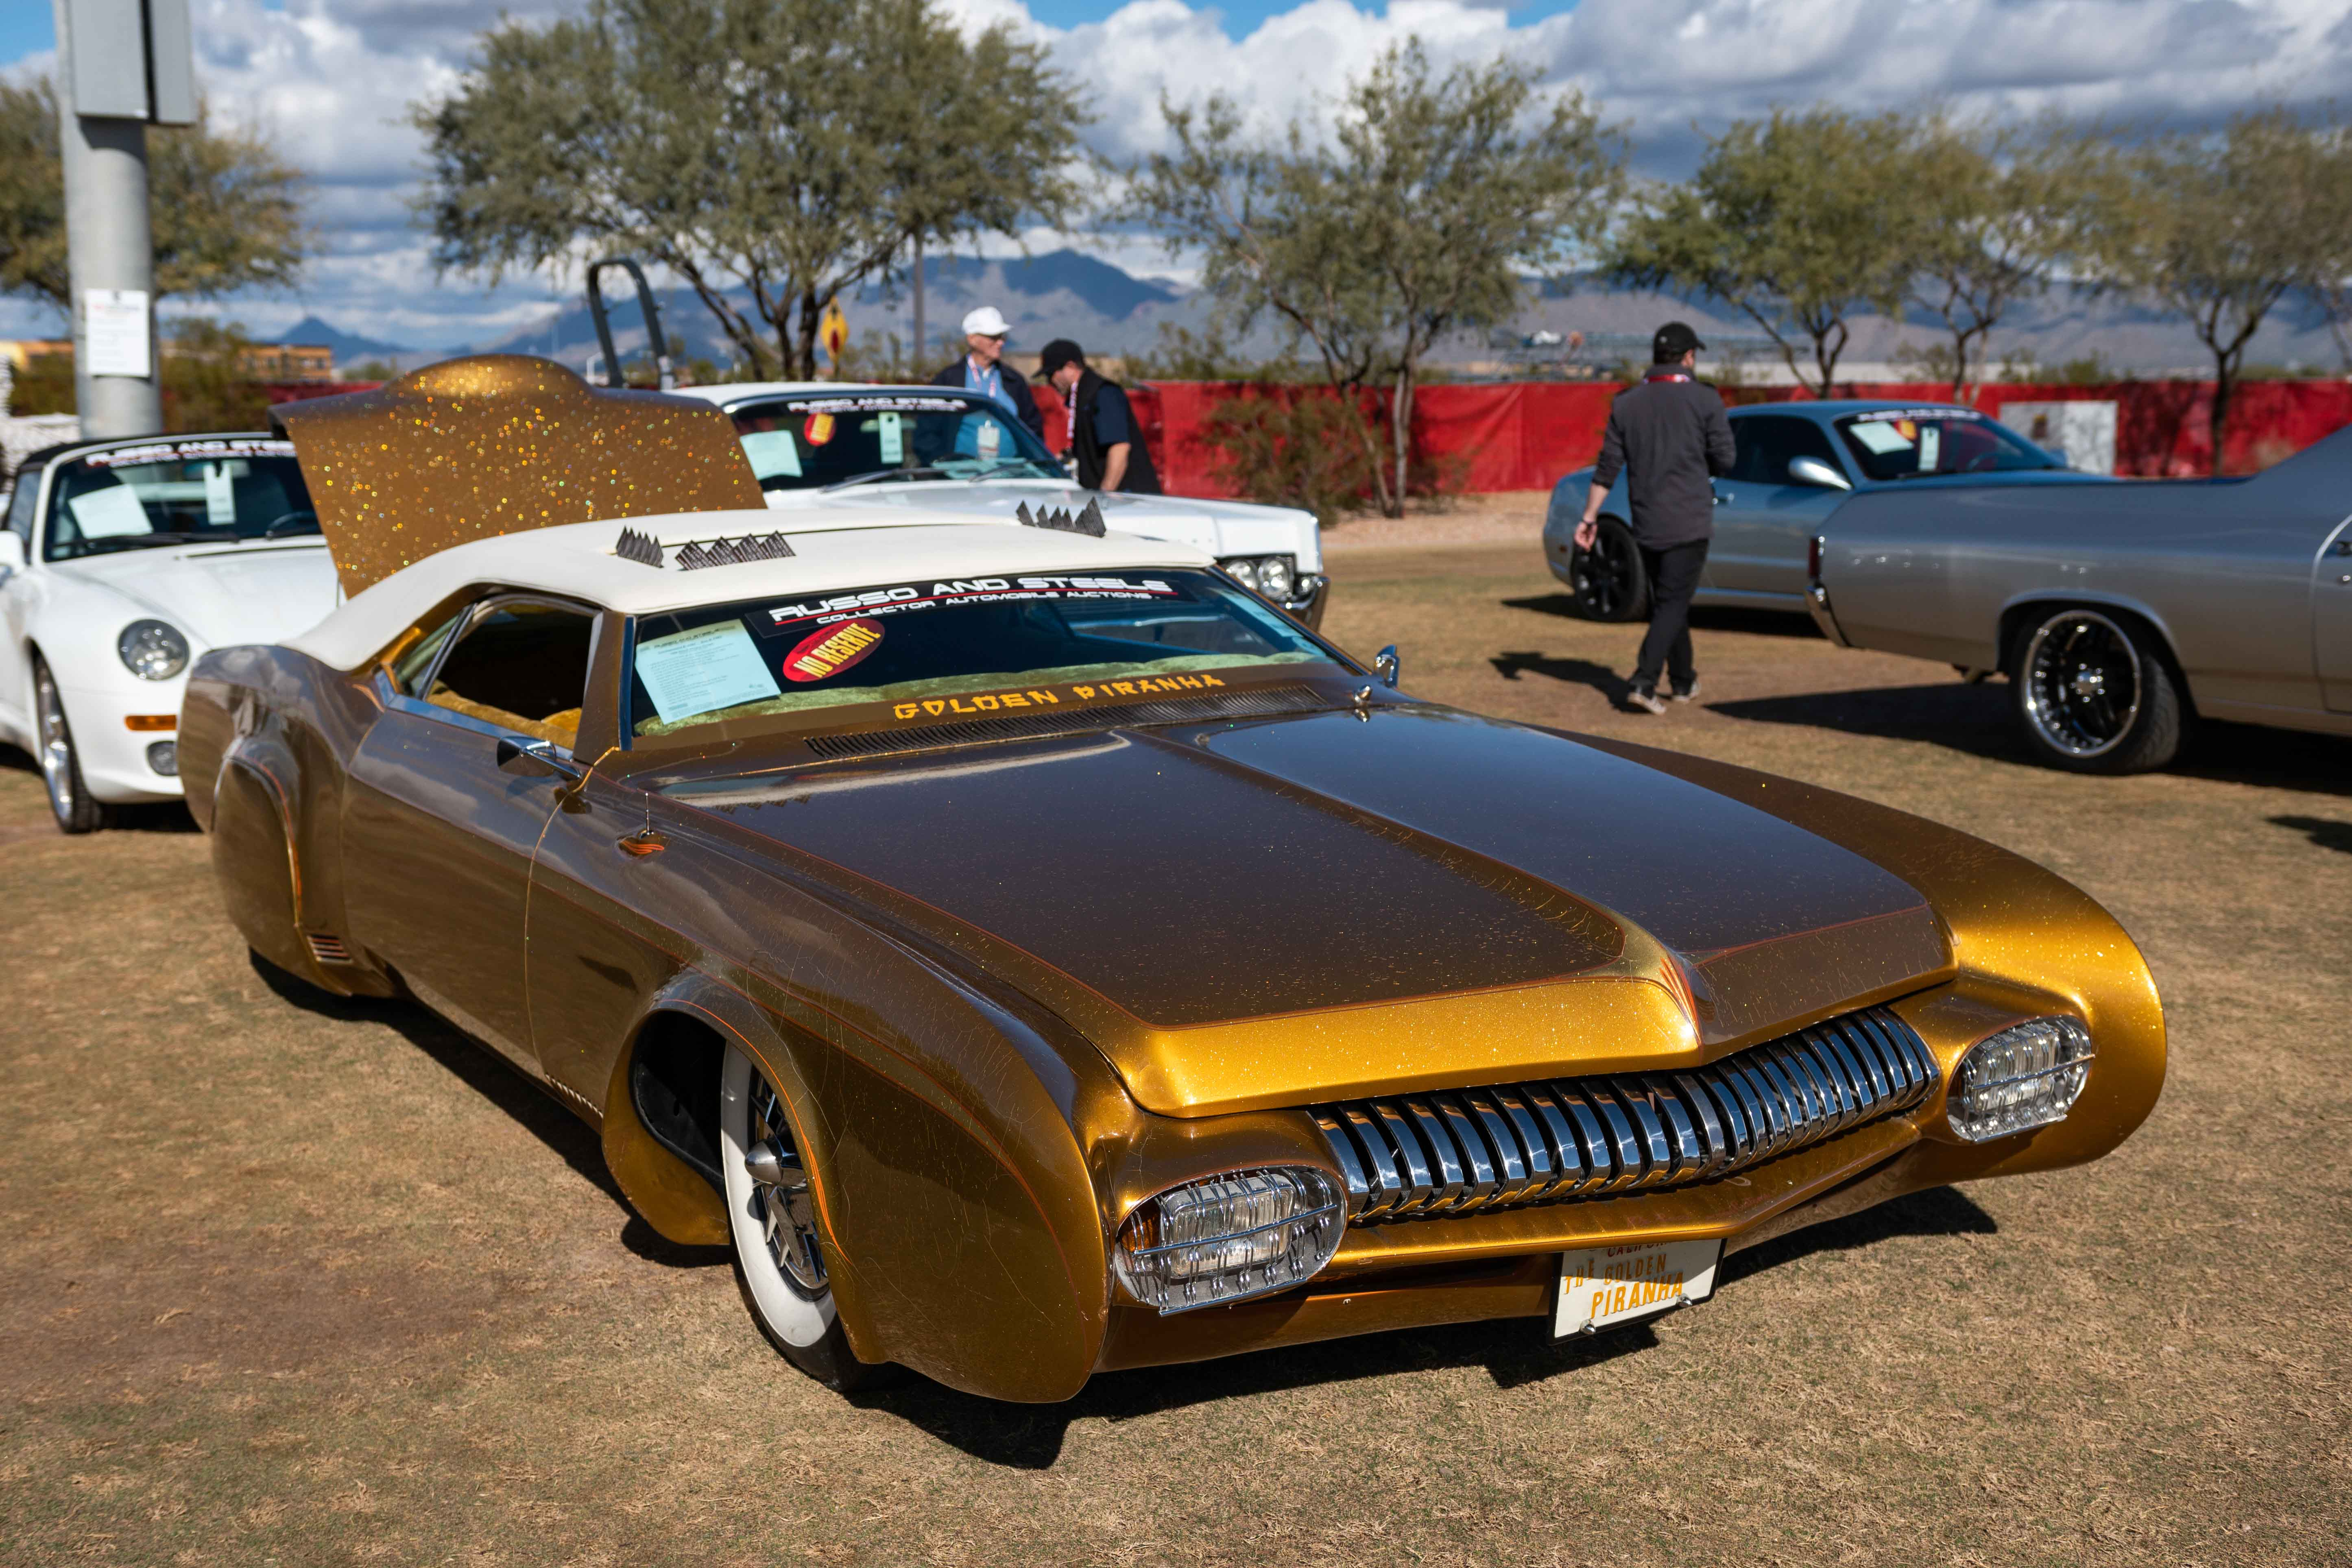 Russo and Steele auction, Carter's picks from the Russo and Steele auction in Scottsdale, ClassicCars.com Journal